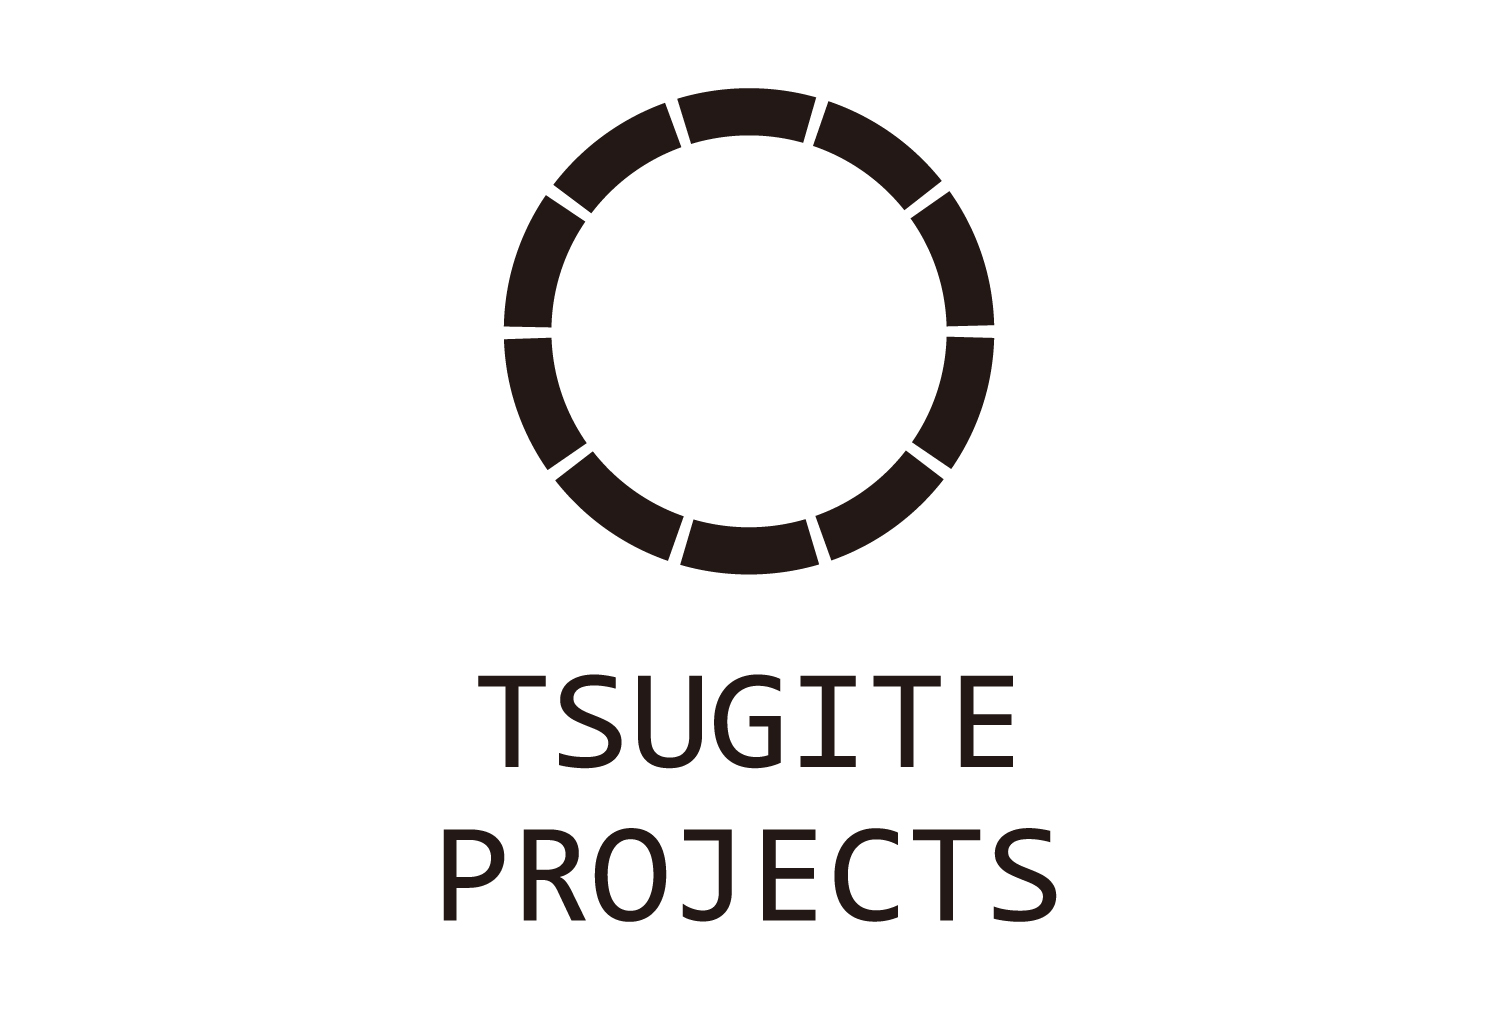 TSUGITE PROJECT